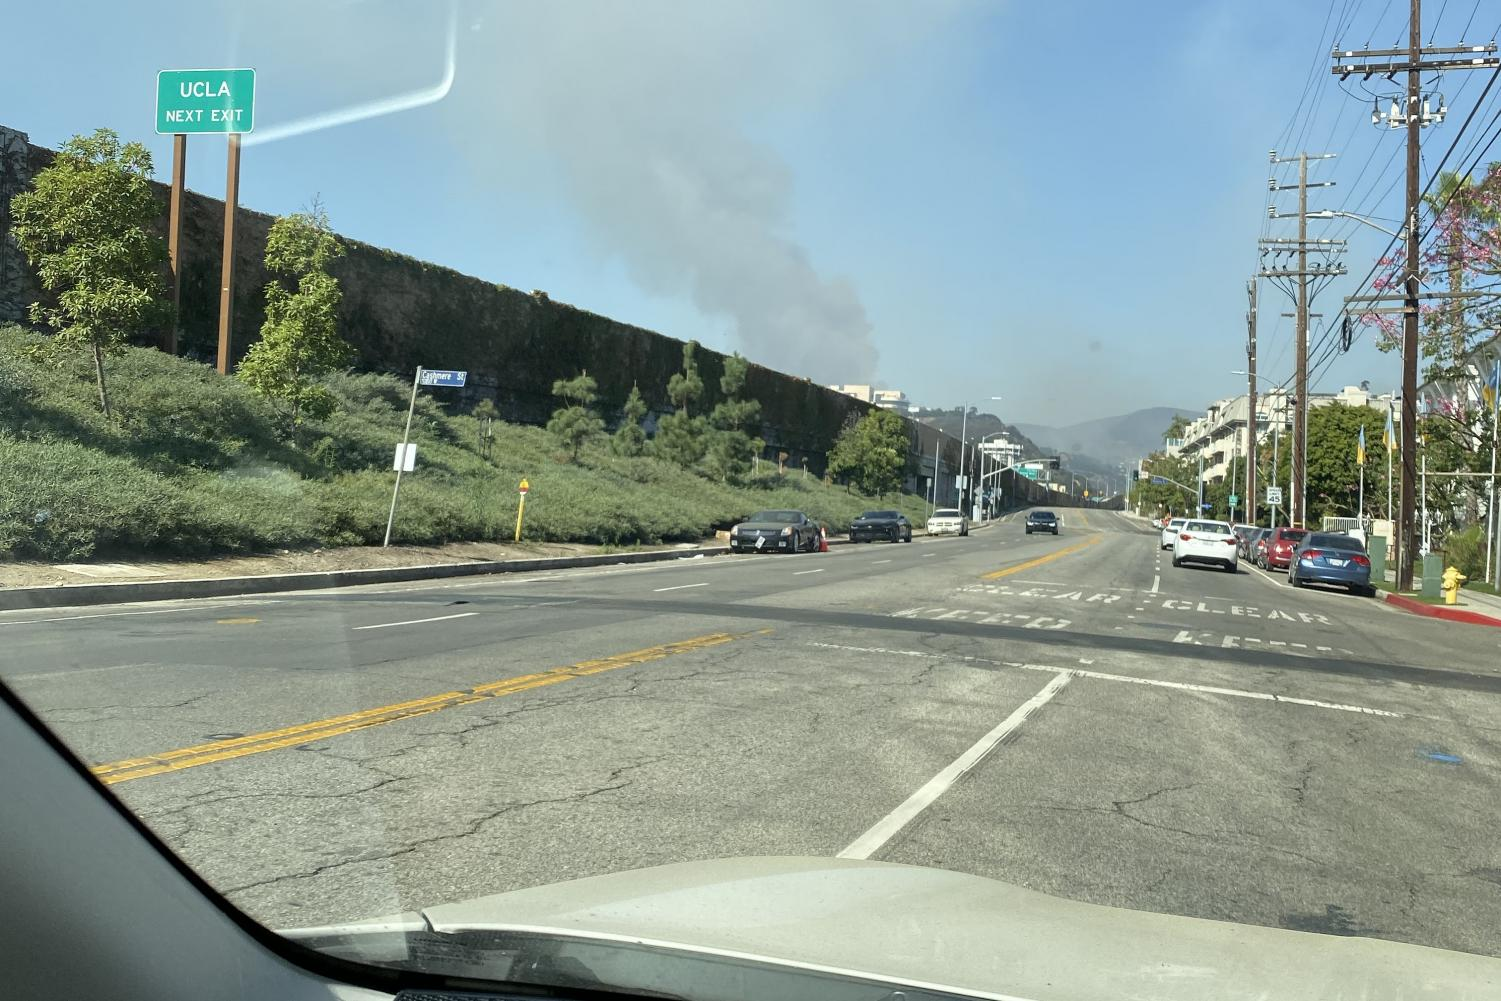 The Getty fire, as seen driving on Sepulveda Boulevard, burned 745 acres. As wildfires become more and more common, it is important that we do not normalize the destruction they bring.